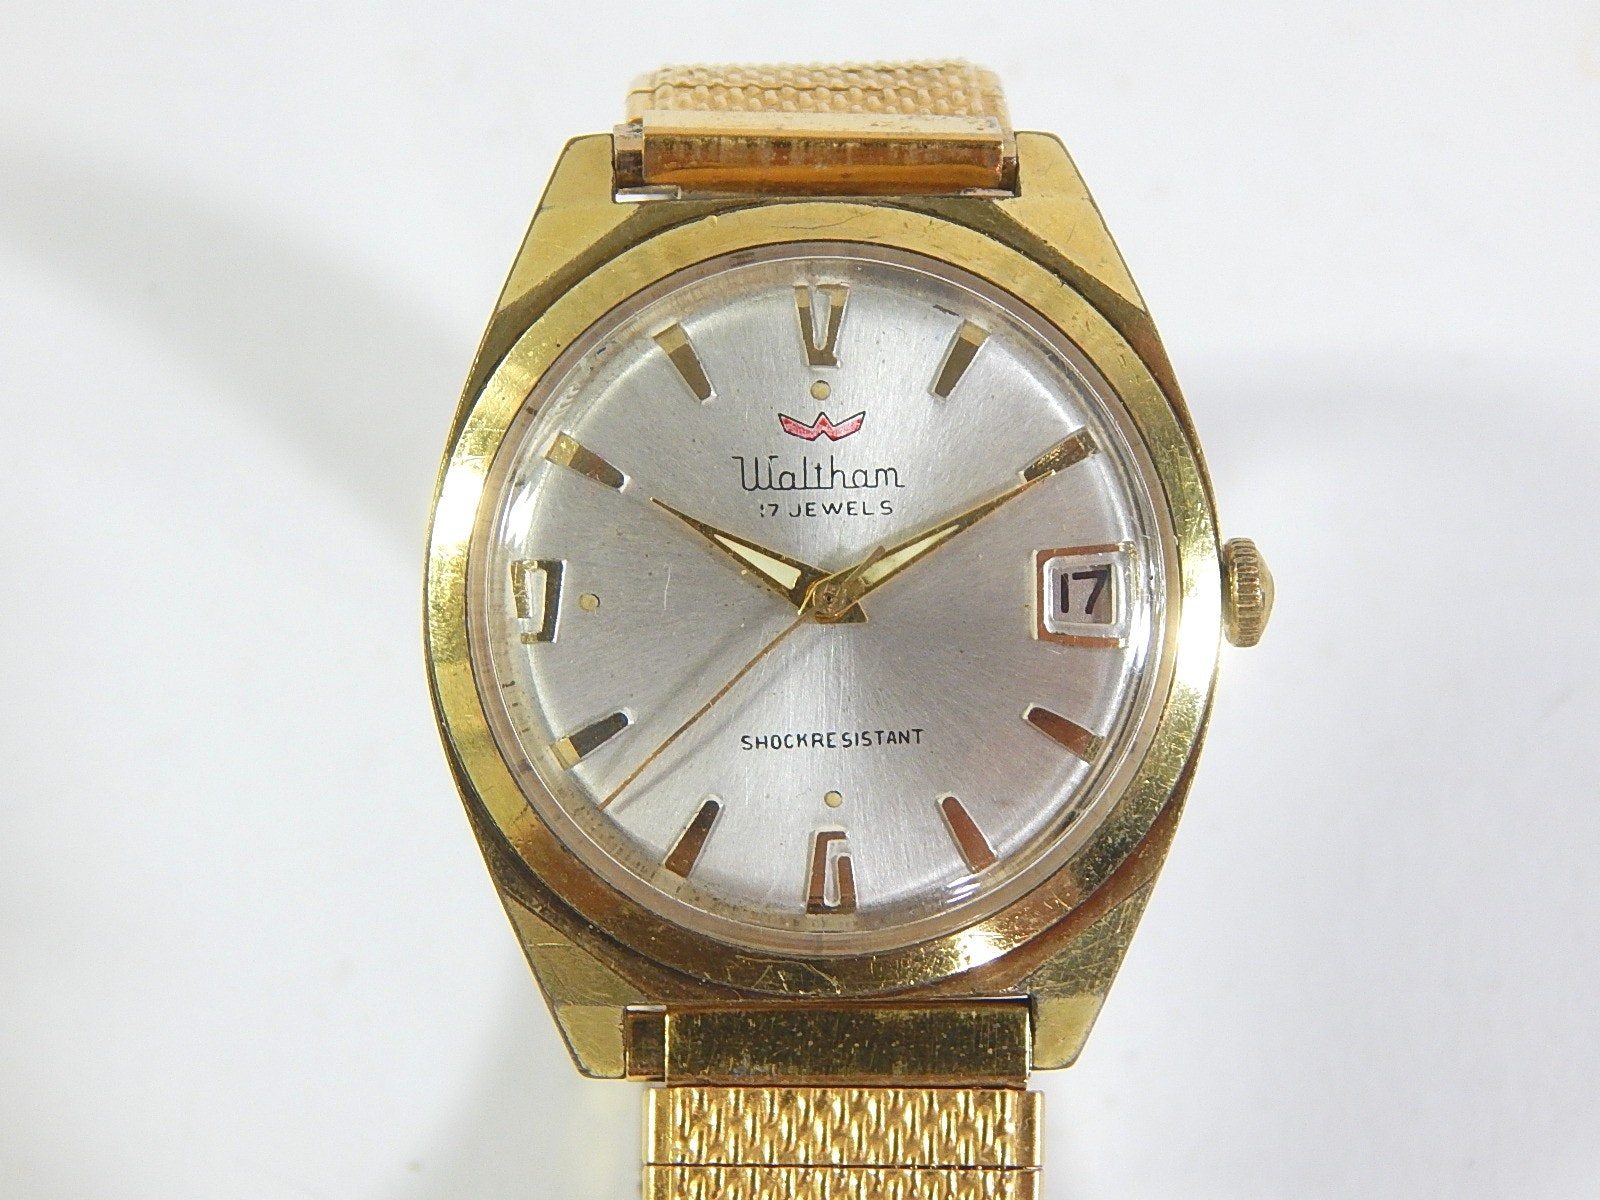 Waltham Gold-Tone 17 Jewel Wristwatch